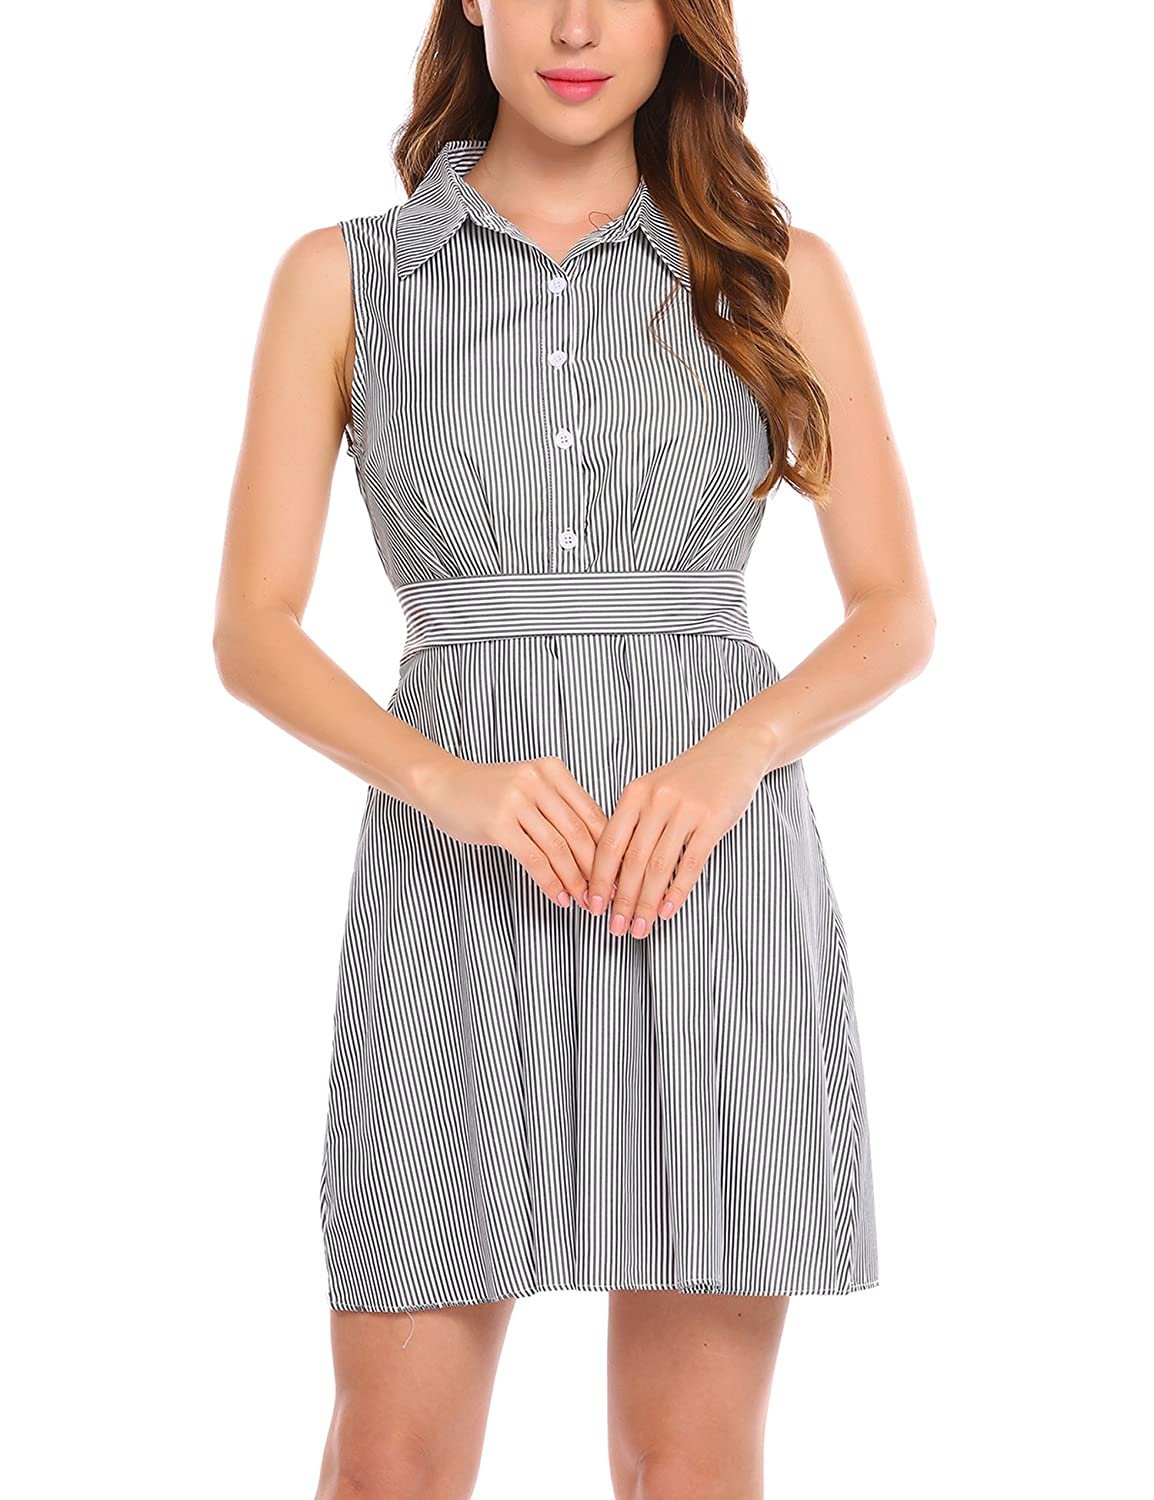 Zeagoo Women Casual Striped Sleeveless Fit And Flare Pleated Shirt